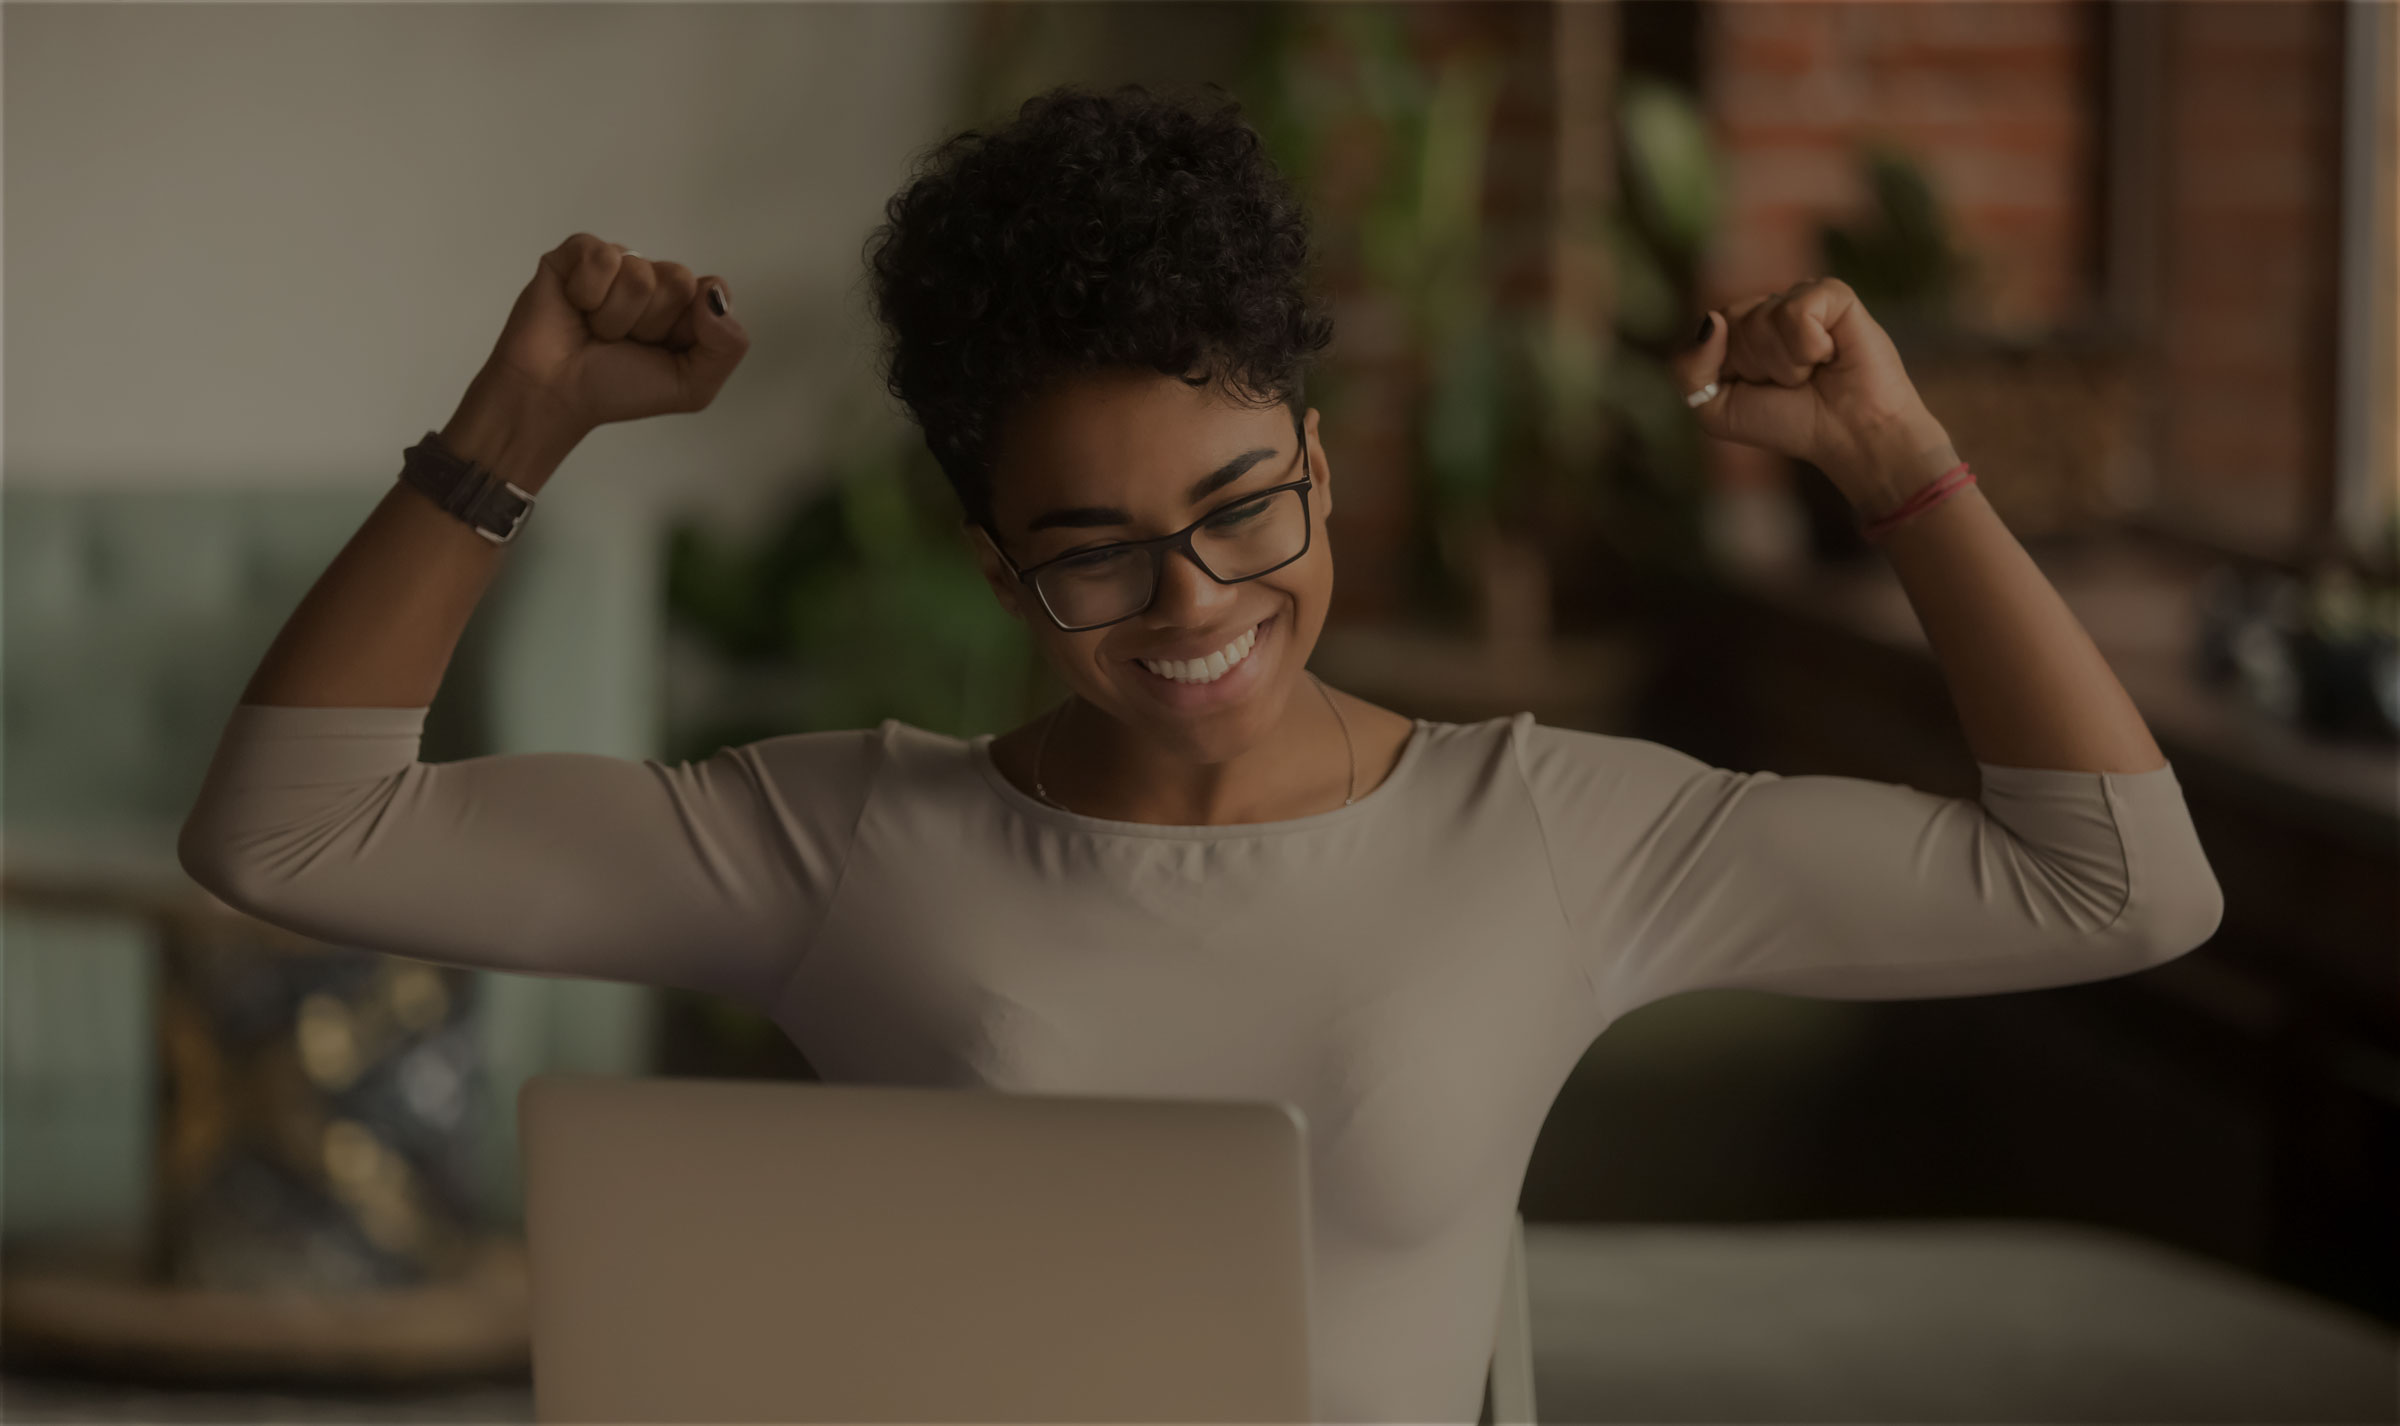 Happy woman who leveraged good news to her benefit because it has market value.